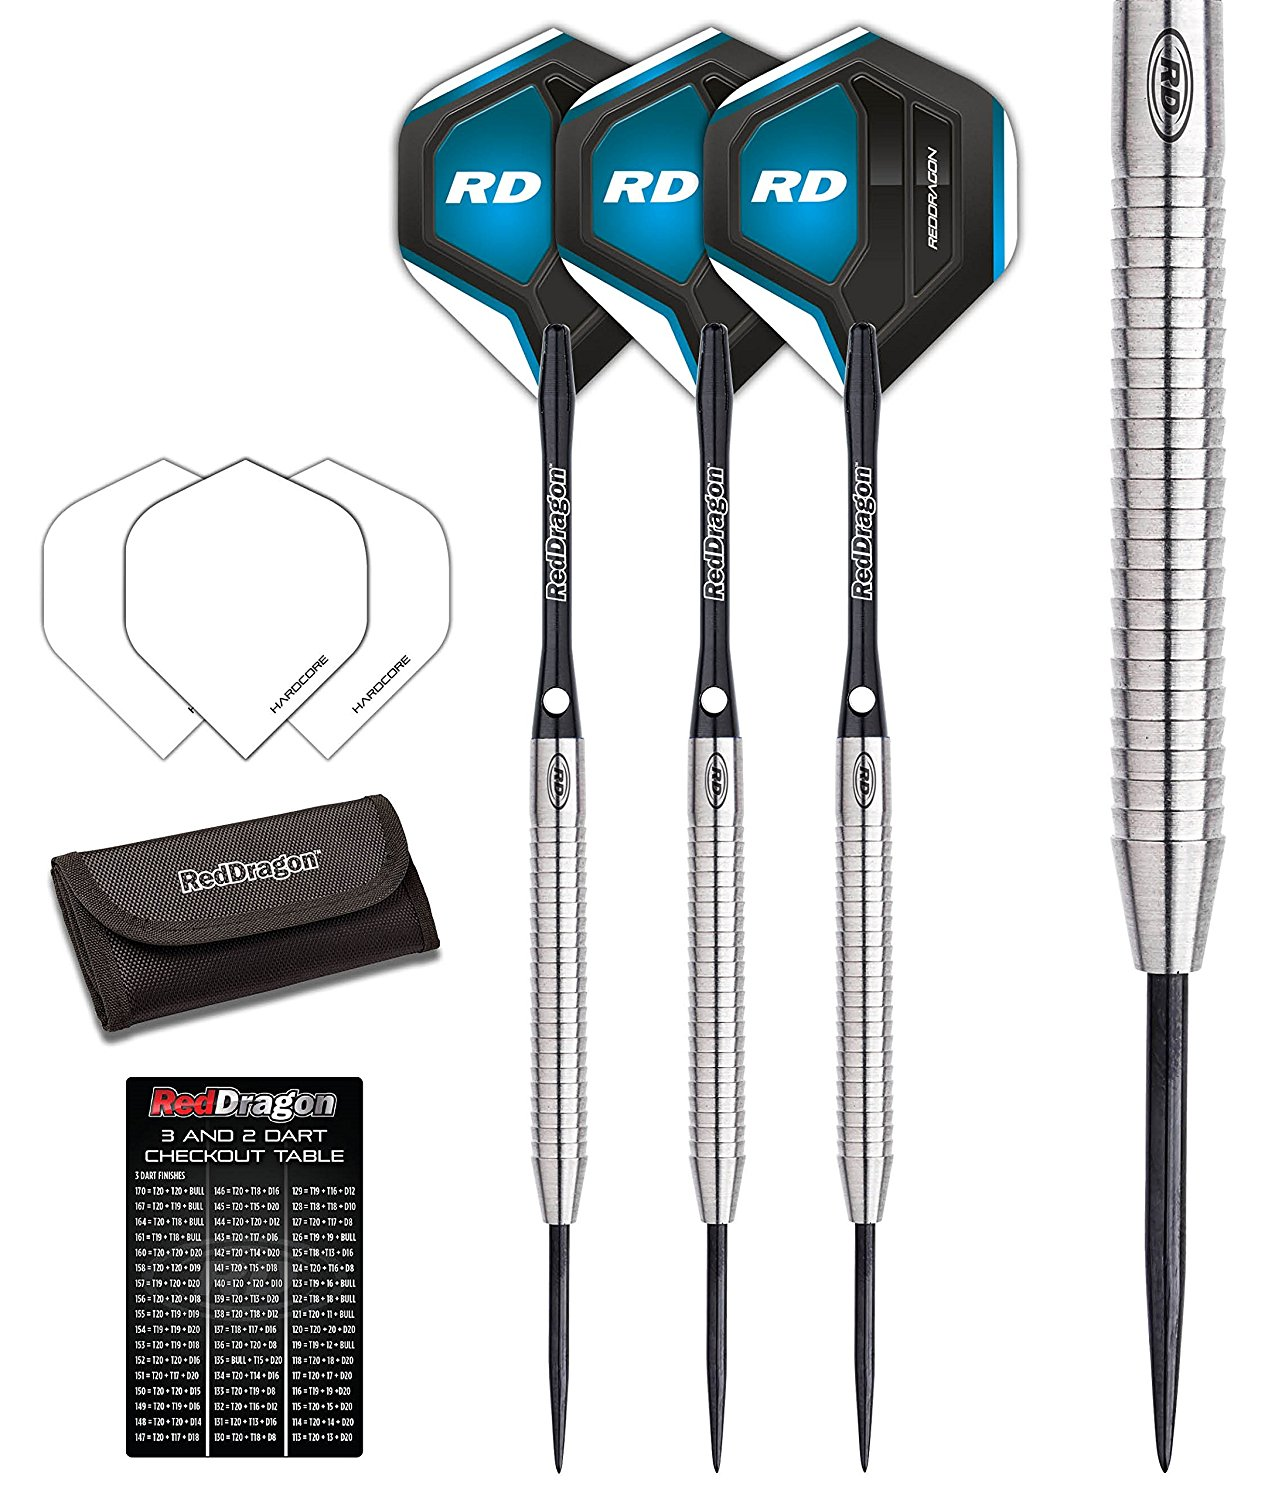 Red Dragon Razor Edge 1: 24g - 85% Tungsten Steel Darts with Flights, Shafts & Wallet & Red Dragon Checkout Card